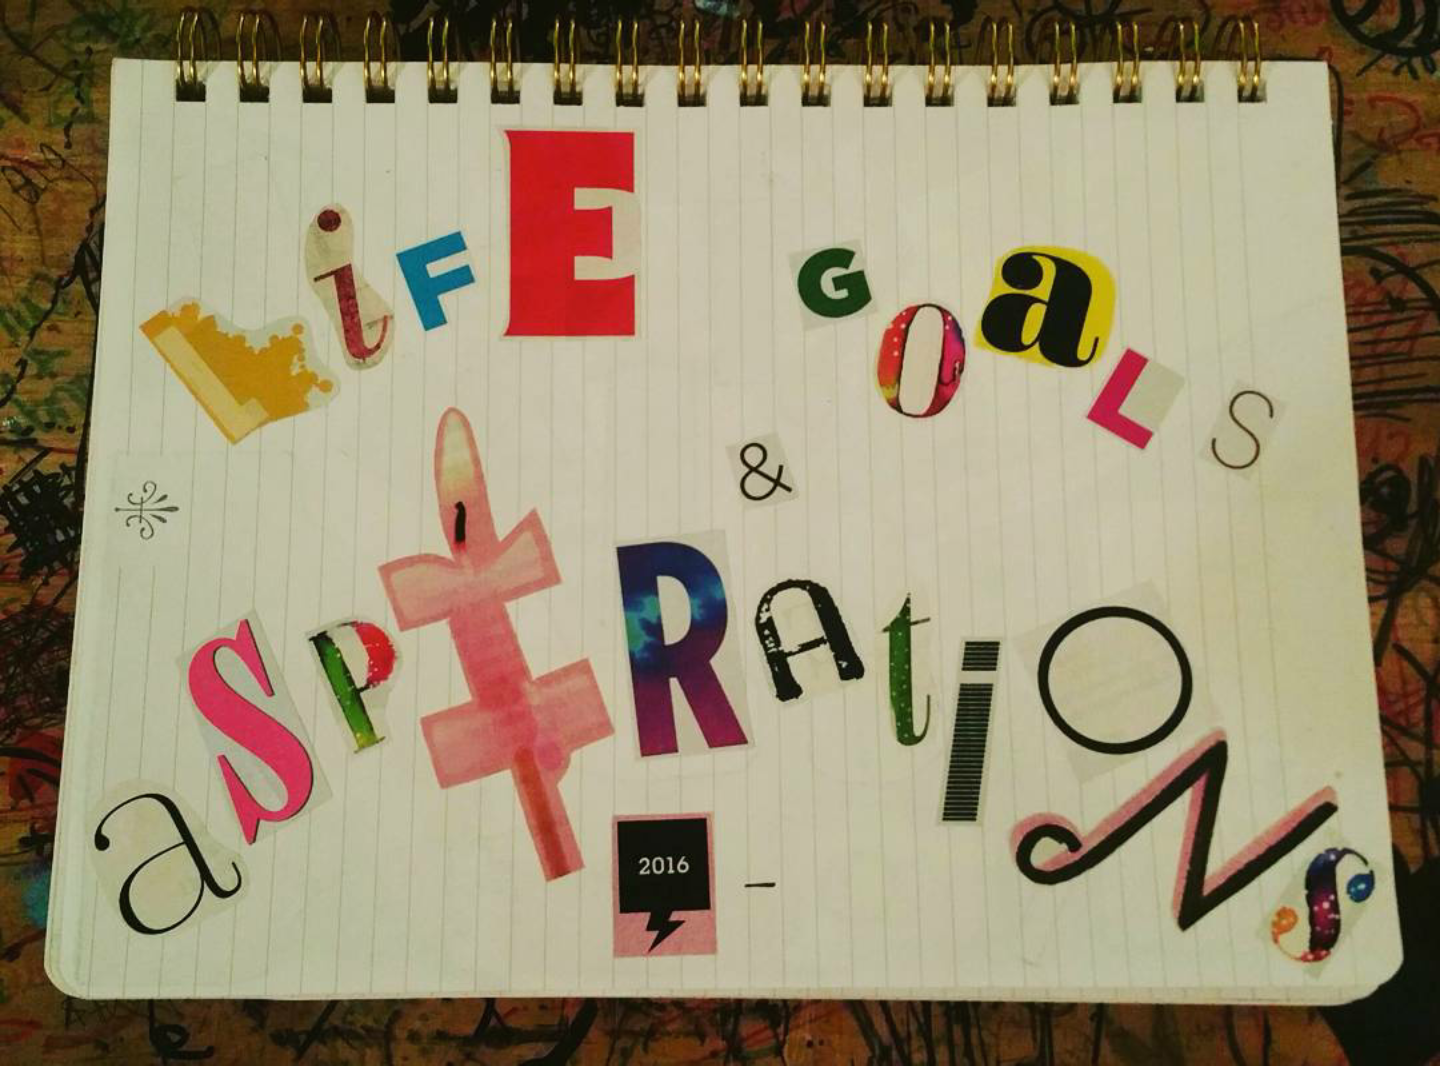 simpleigh me diy life goals aspirations journal i of course called mine life goals aspirations i also added a cut out of the year i started the journal and a dash for when i complete it